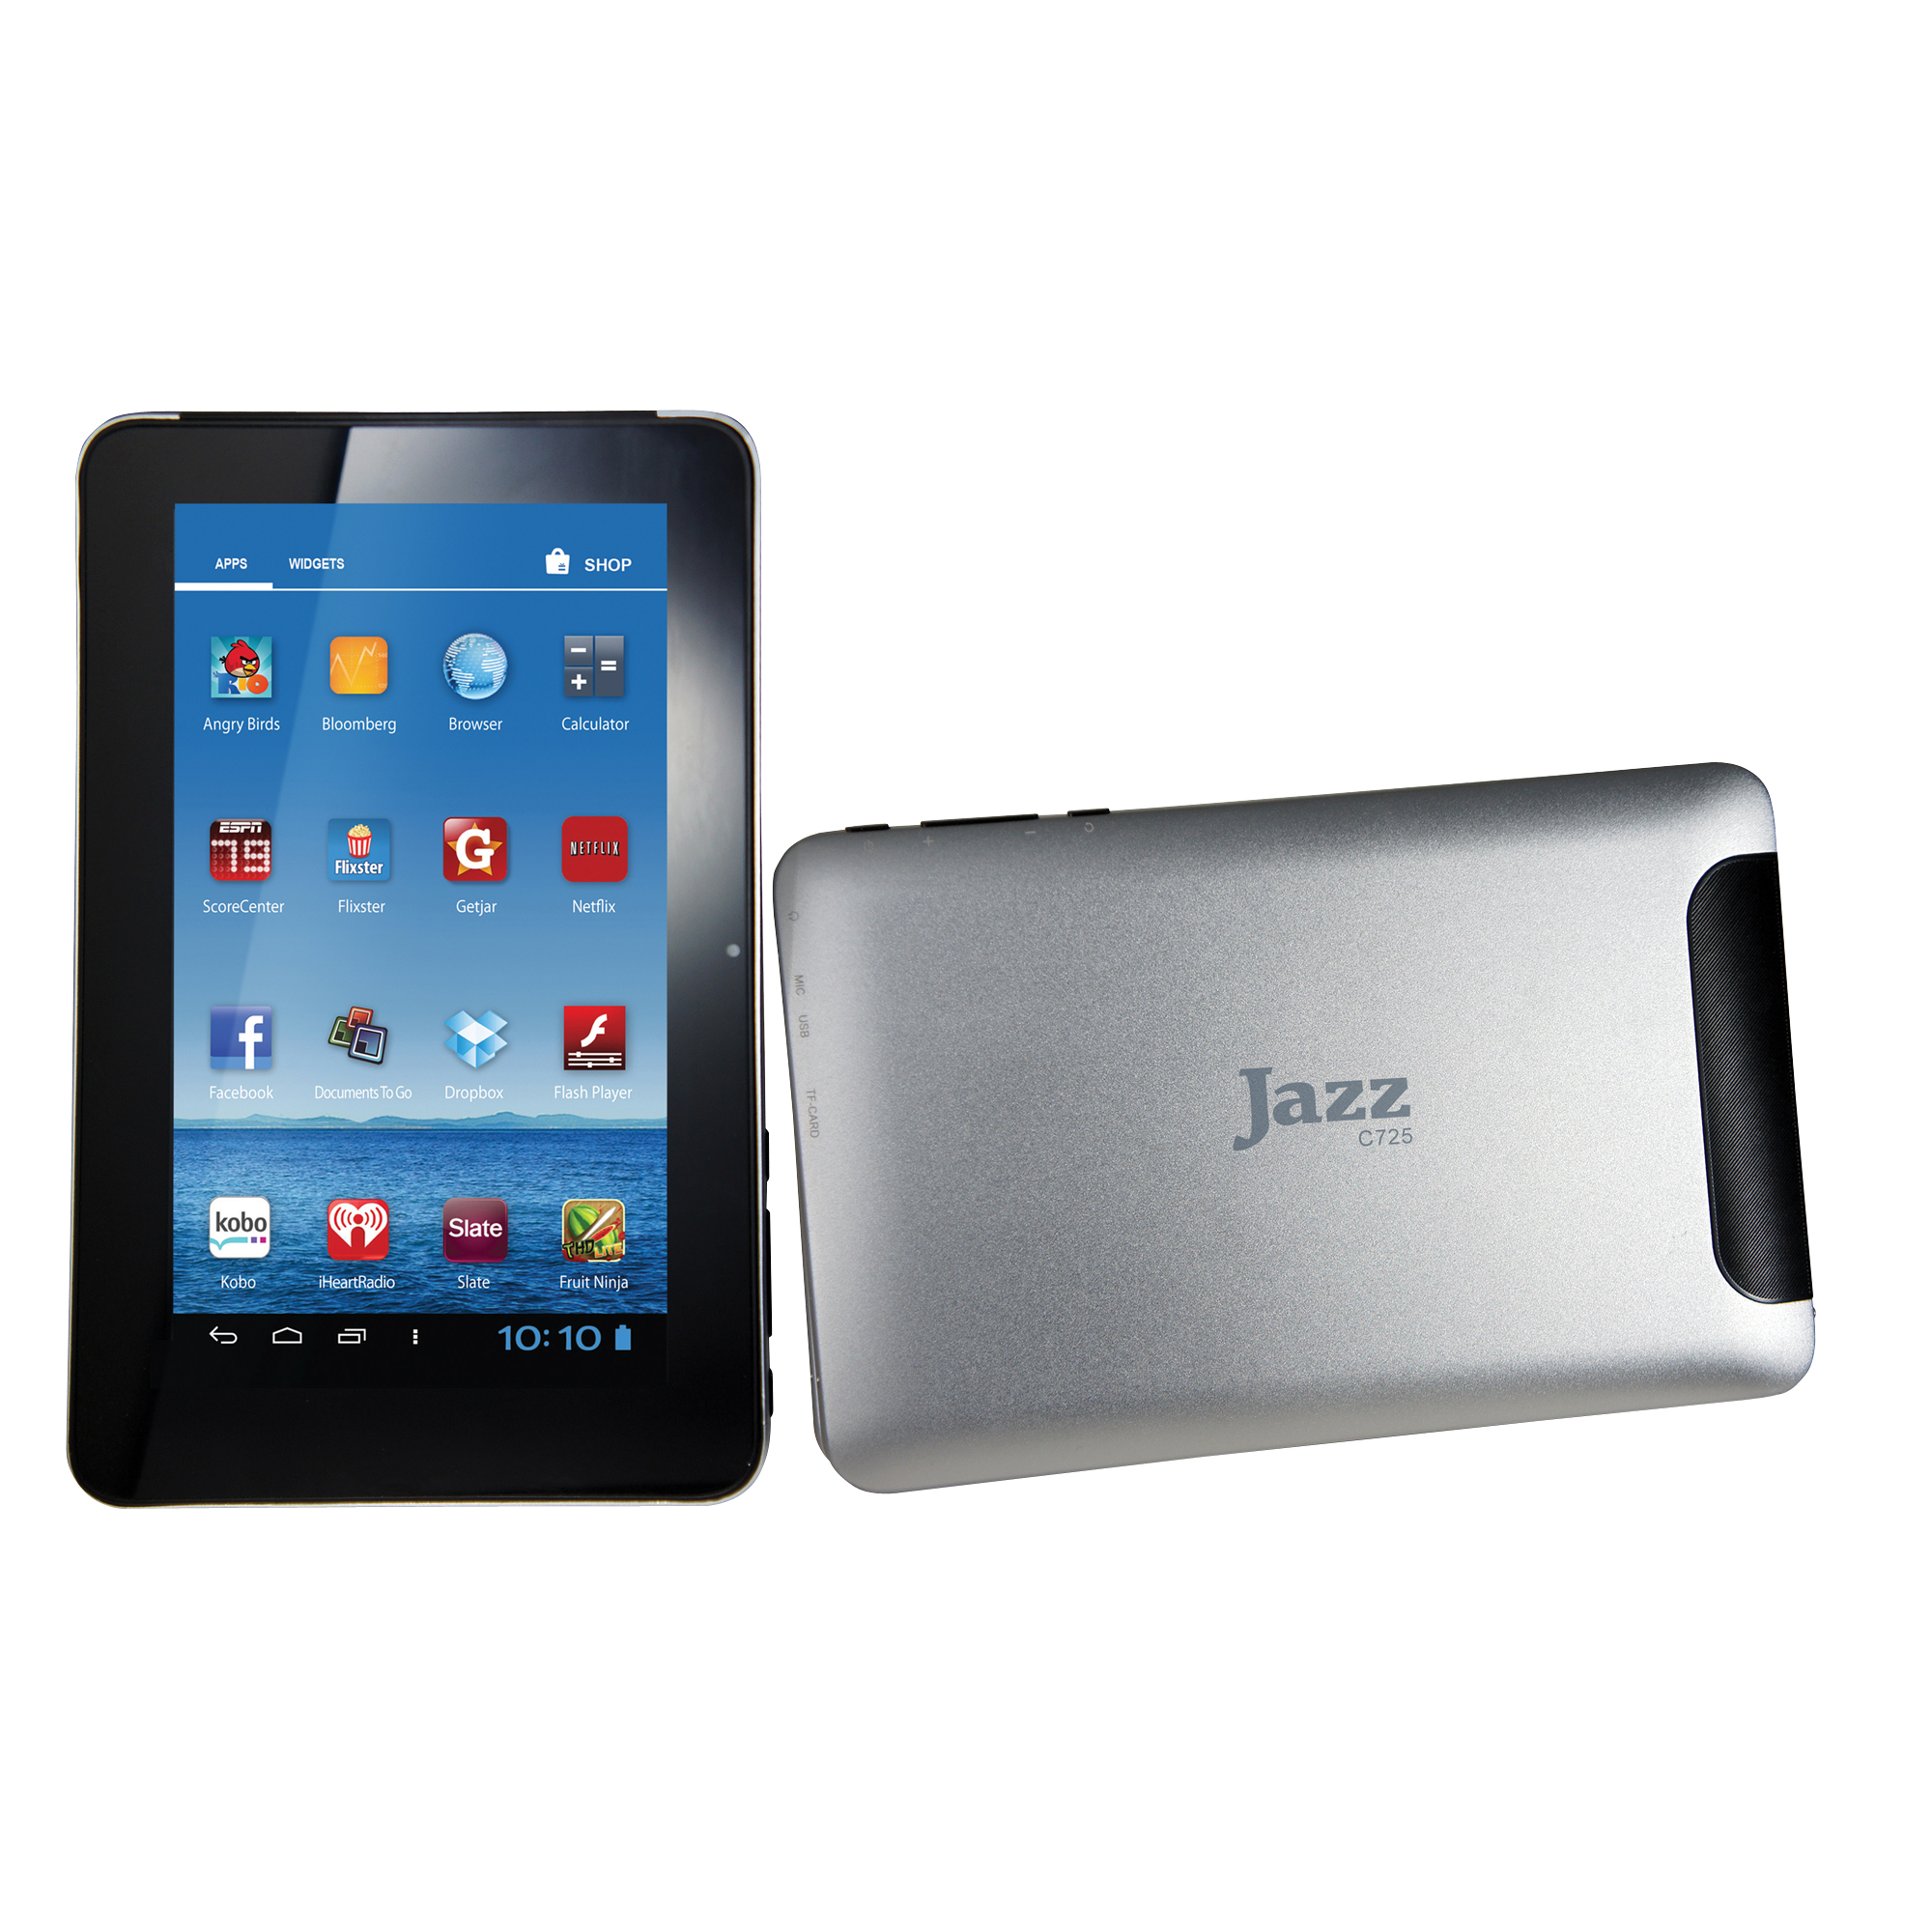 "UltraTab™ Jazz C725 Tablet, 7"" Screen, 4GB Storage, Android 4.0 Ice Cream Sandwich"